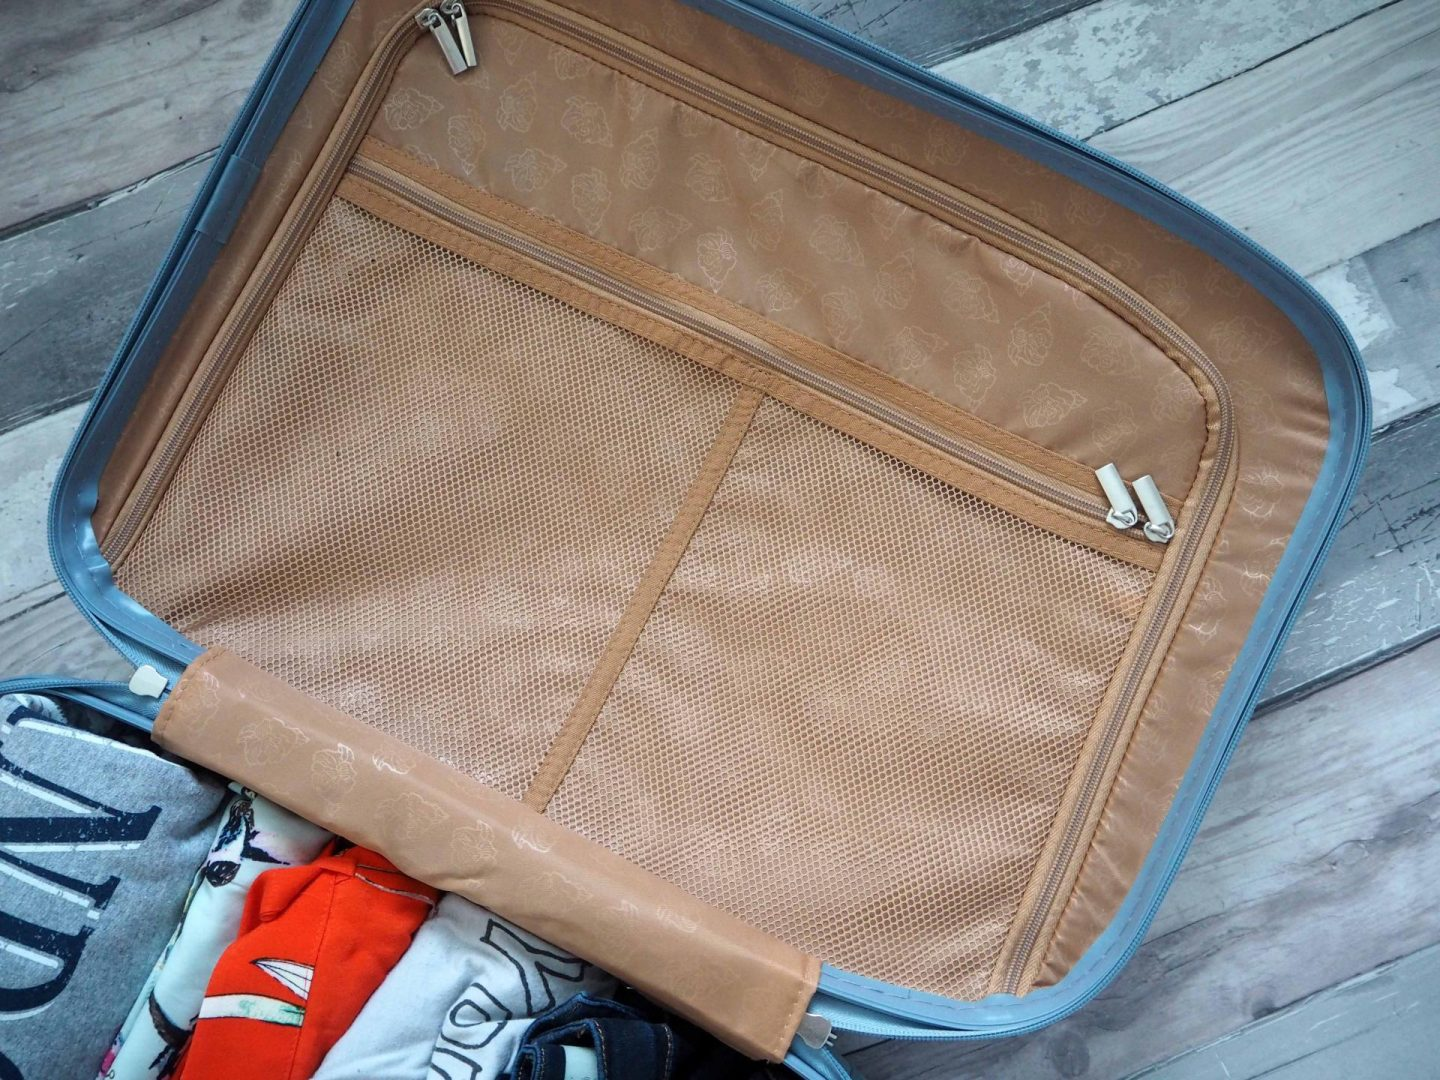 Tips for packing Hand Luggage only, House of Fraser Suitcase - Rachel Nicole UK Blogger 2